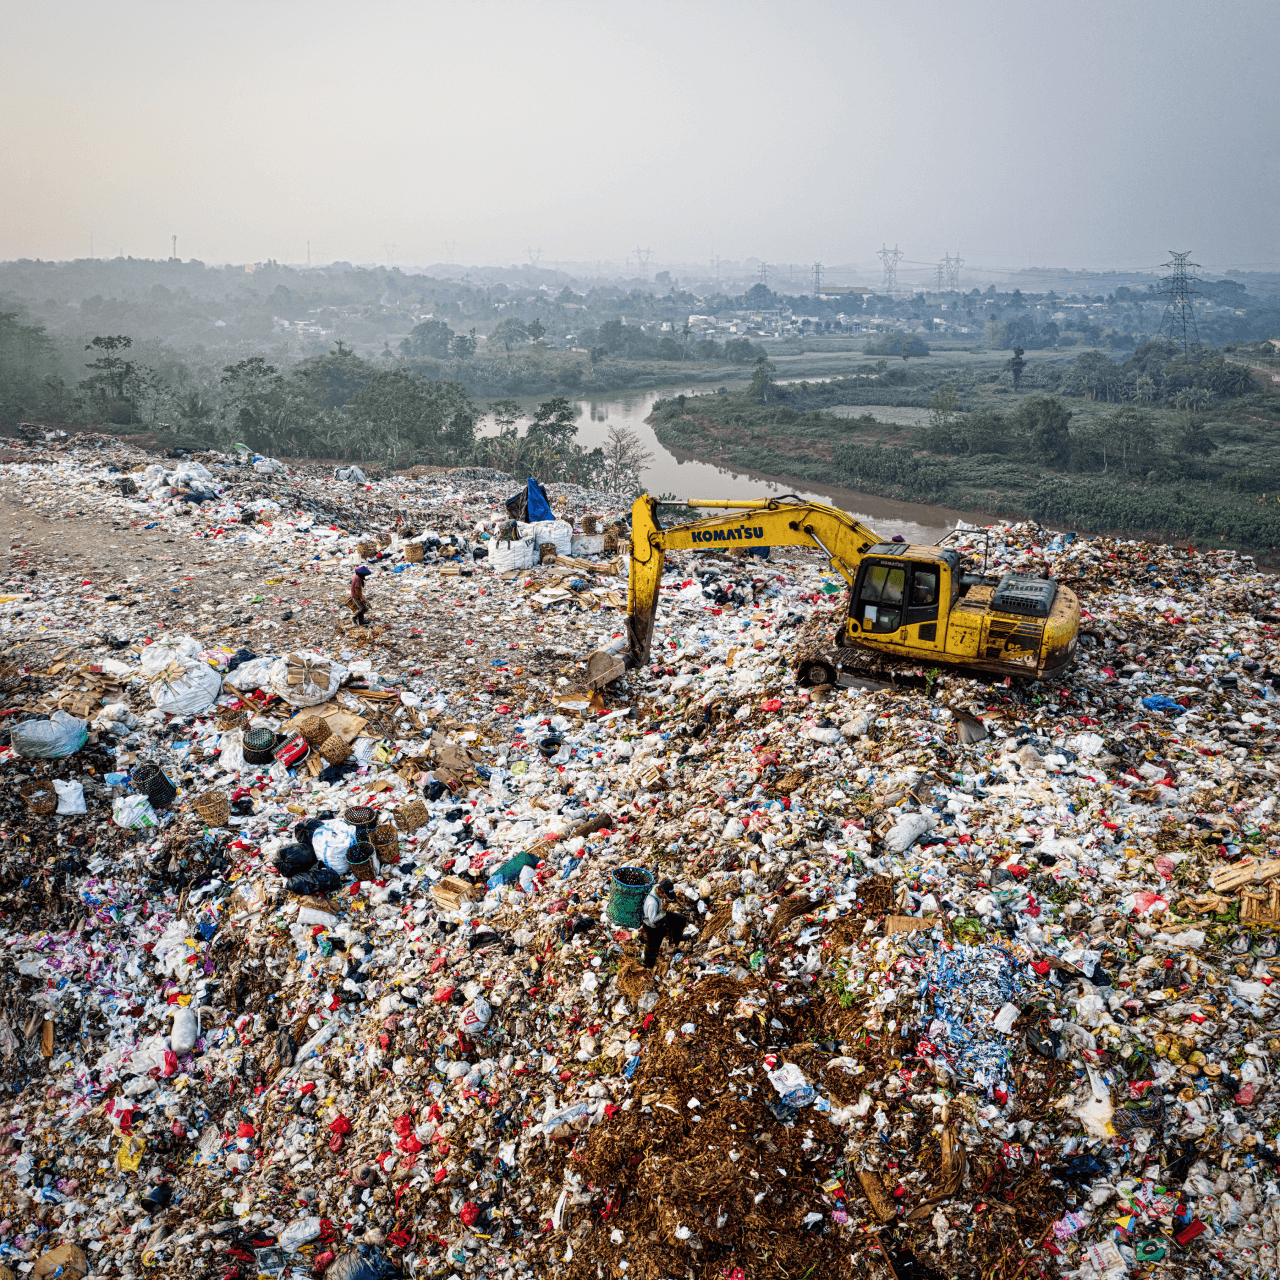 How Do Landfills Contribute to Global Warming?